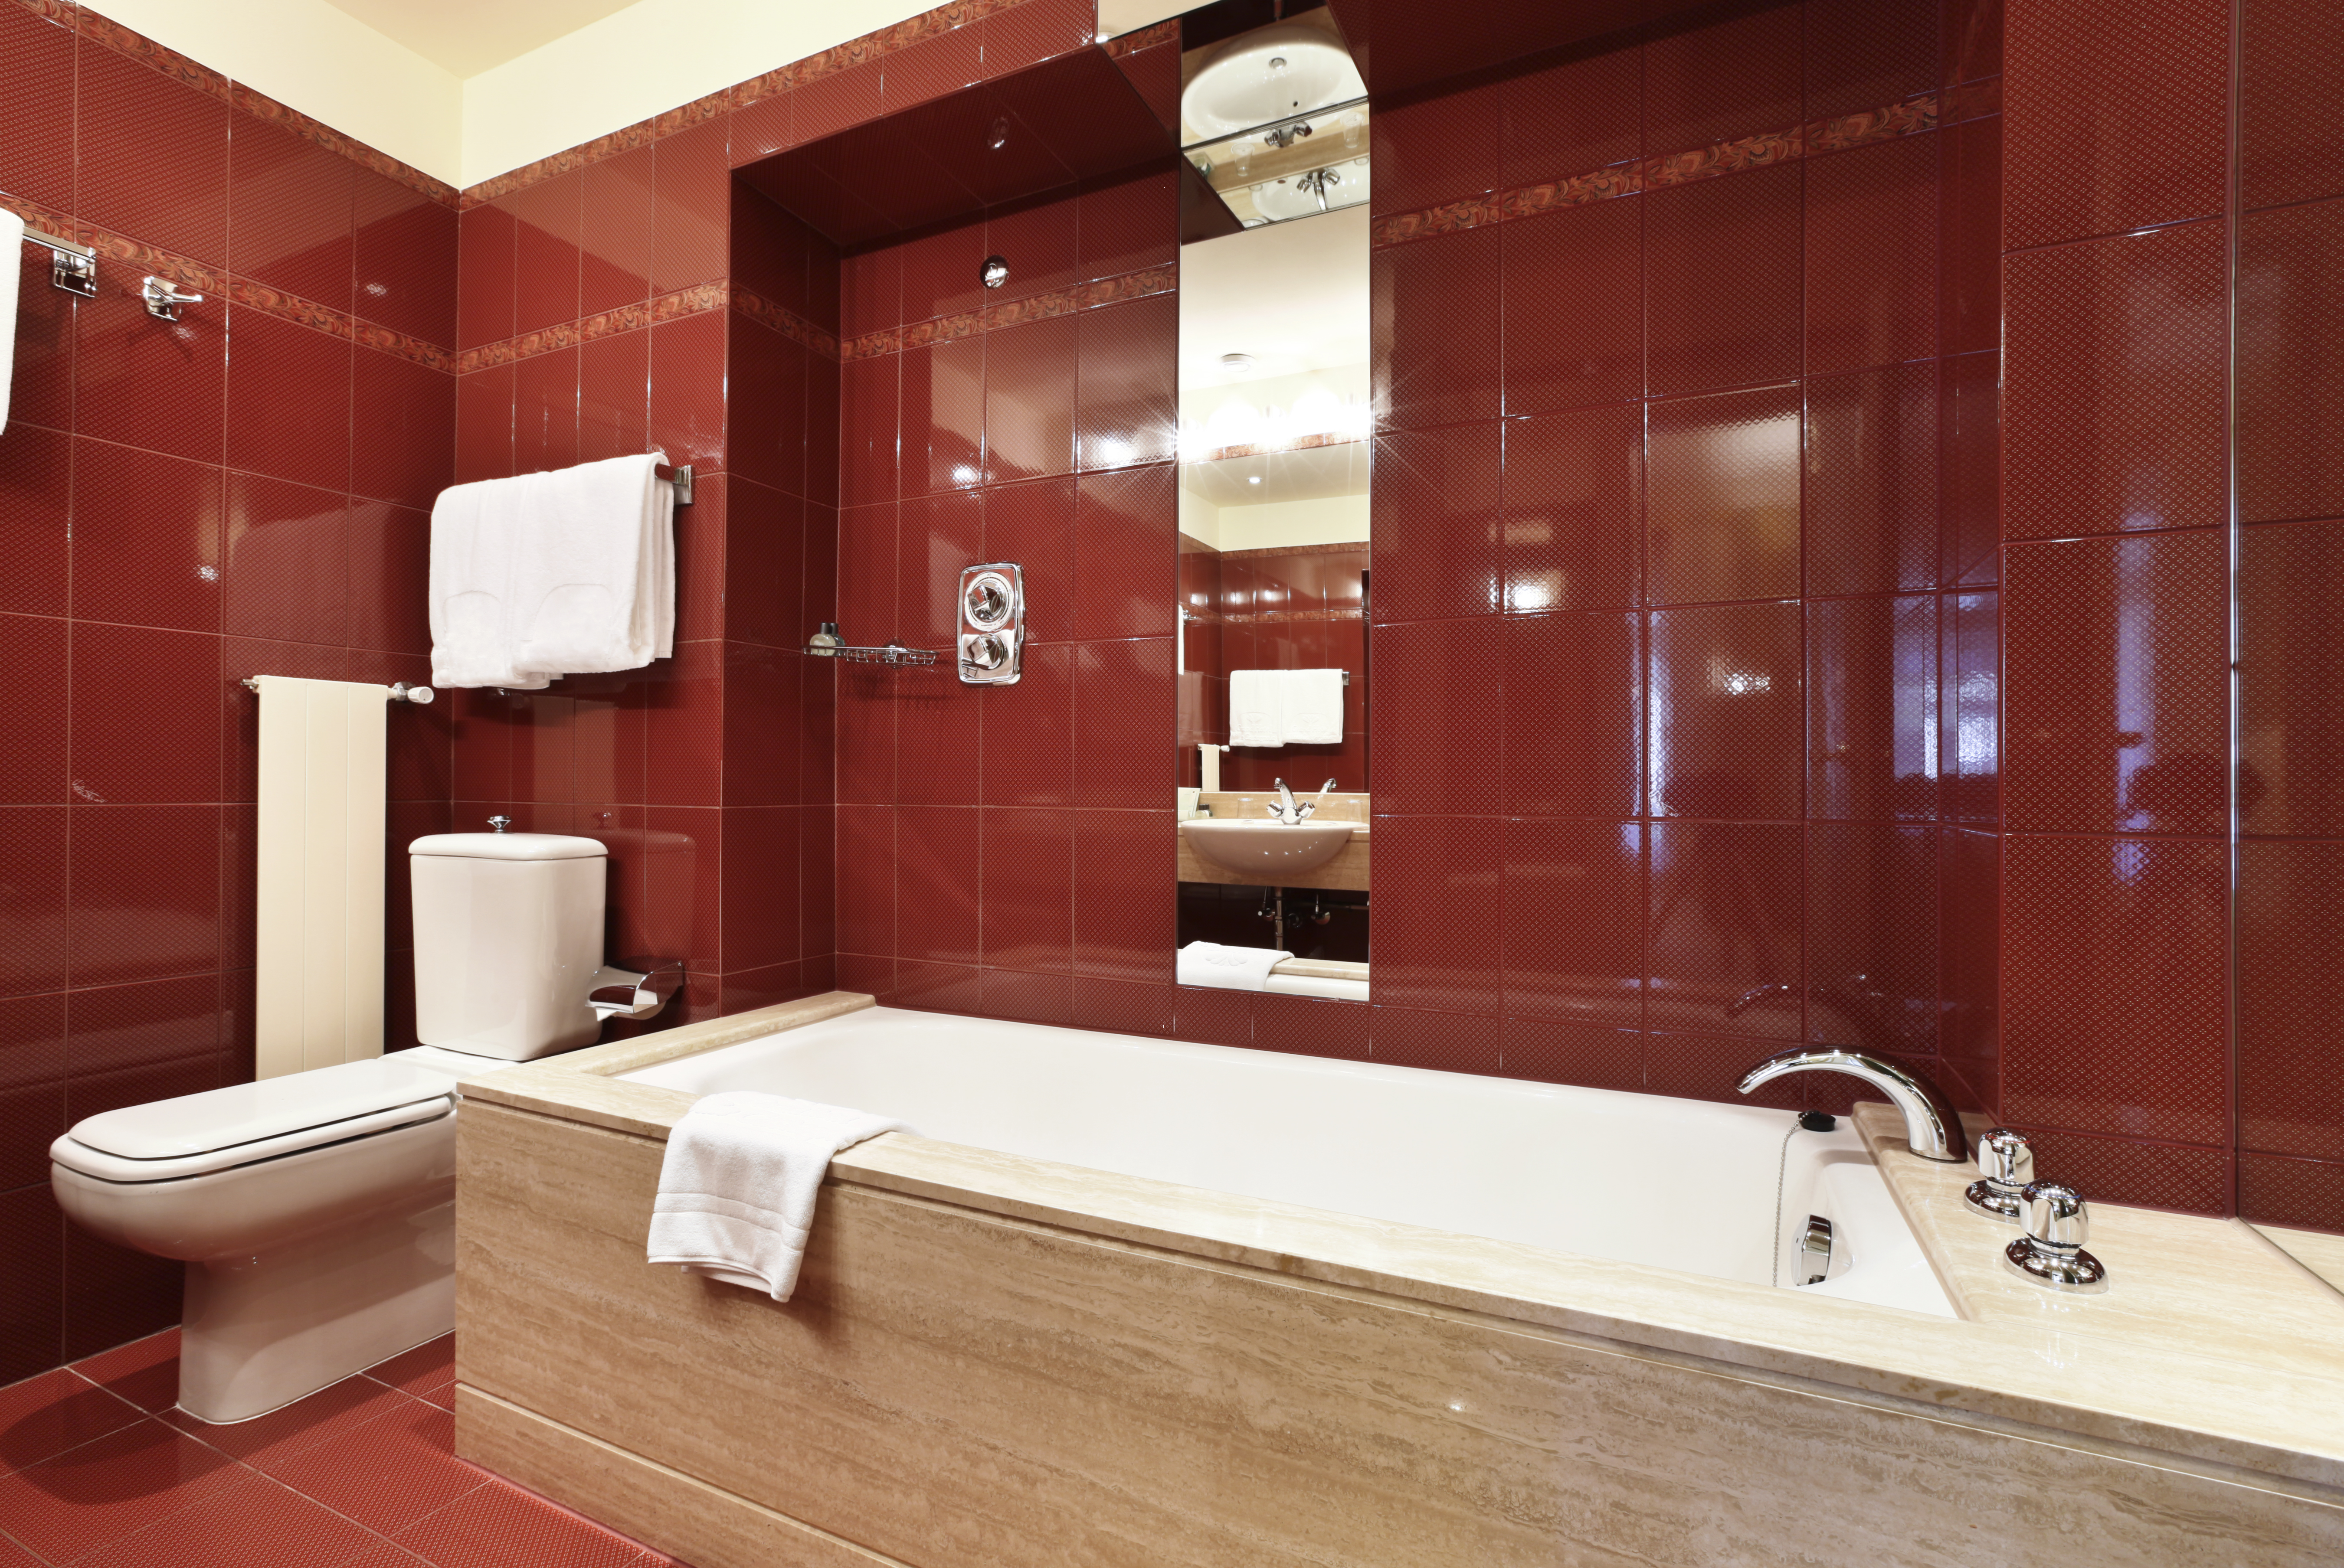 Bathroom with deep red walls and floor